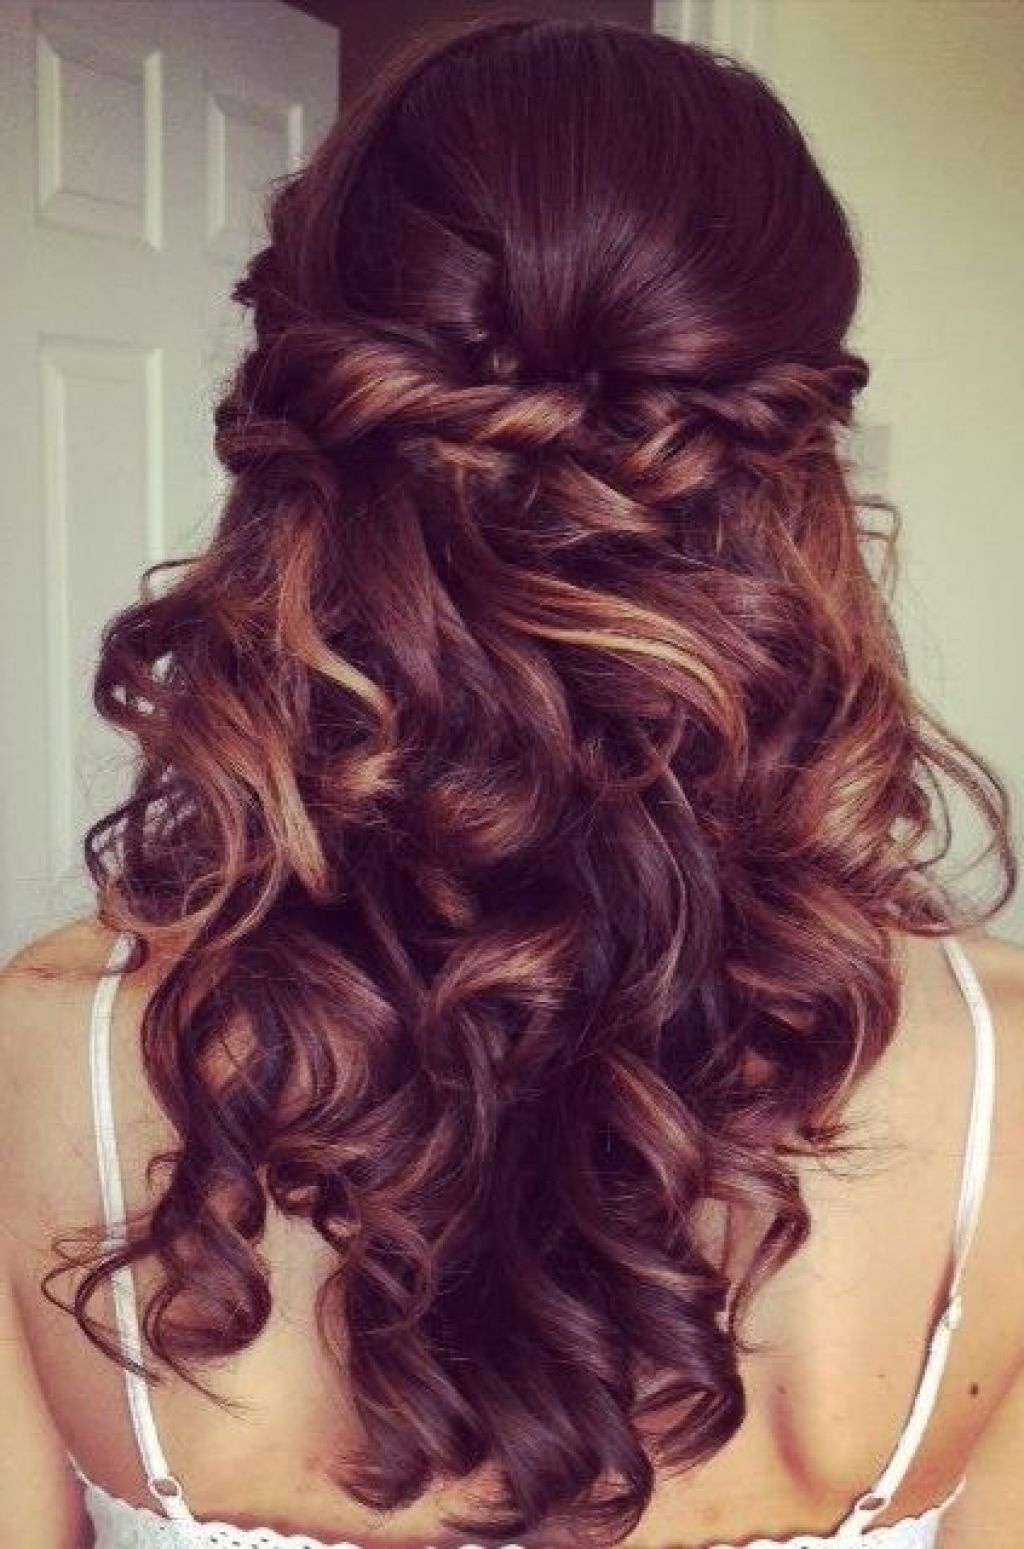 Catchy bridal hairstyles curly hair wedding formal down half up down